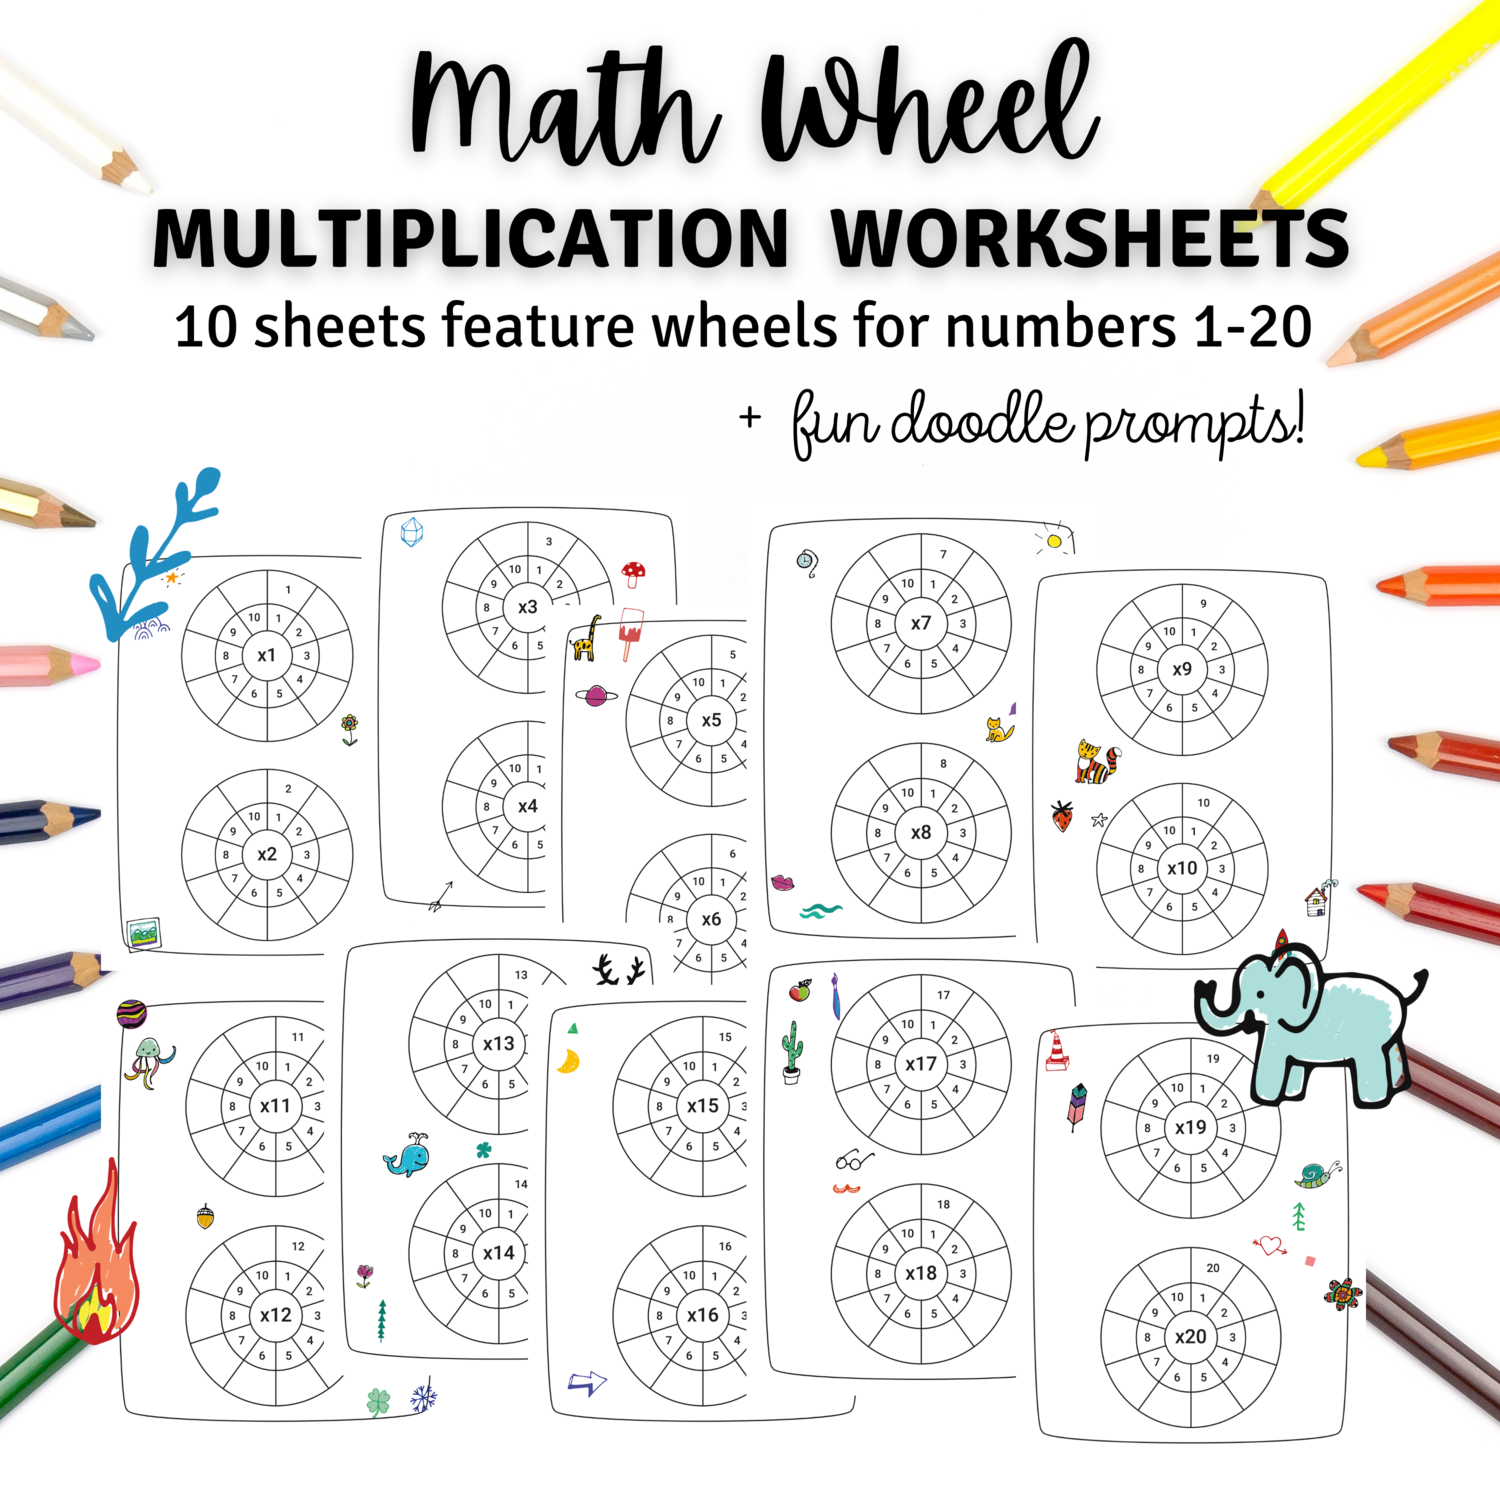 Math Wheel 1-20 Multiplication Worksheets